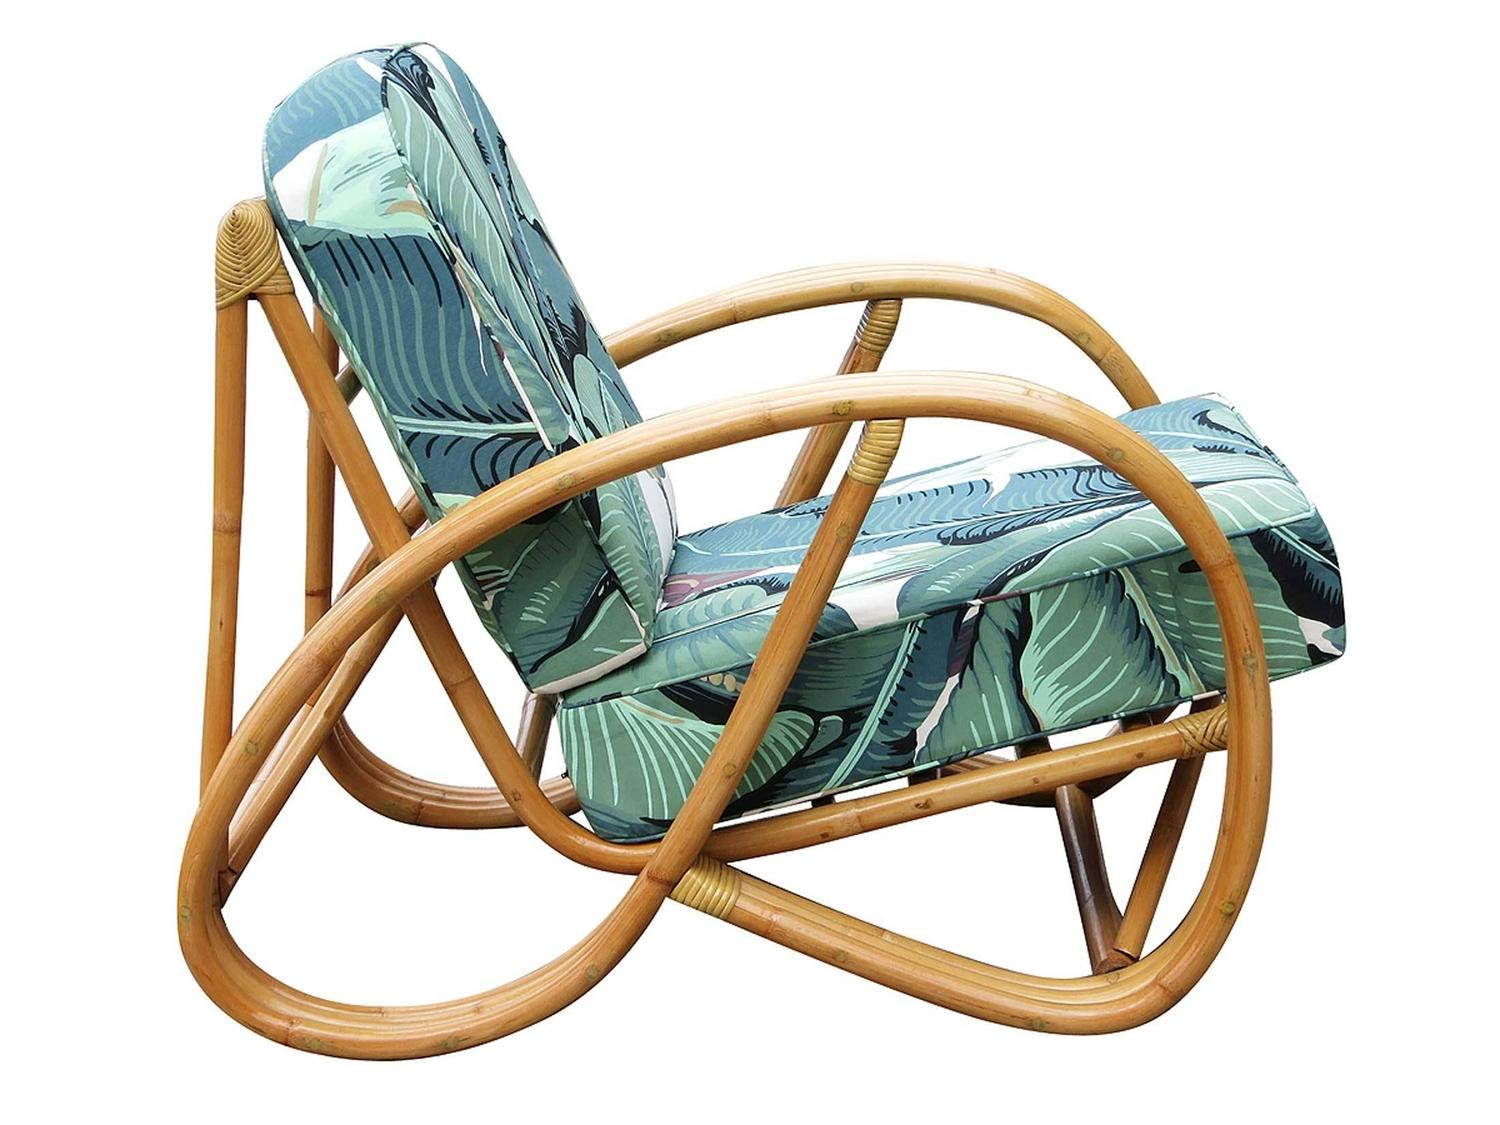 Restored 3/4 Round Pretzel Rattan Lounge Chair With Beverly Palms Cushions  At 1stdibs